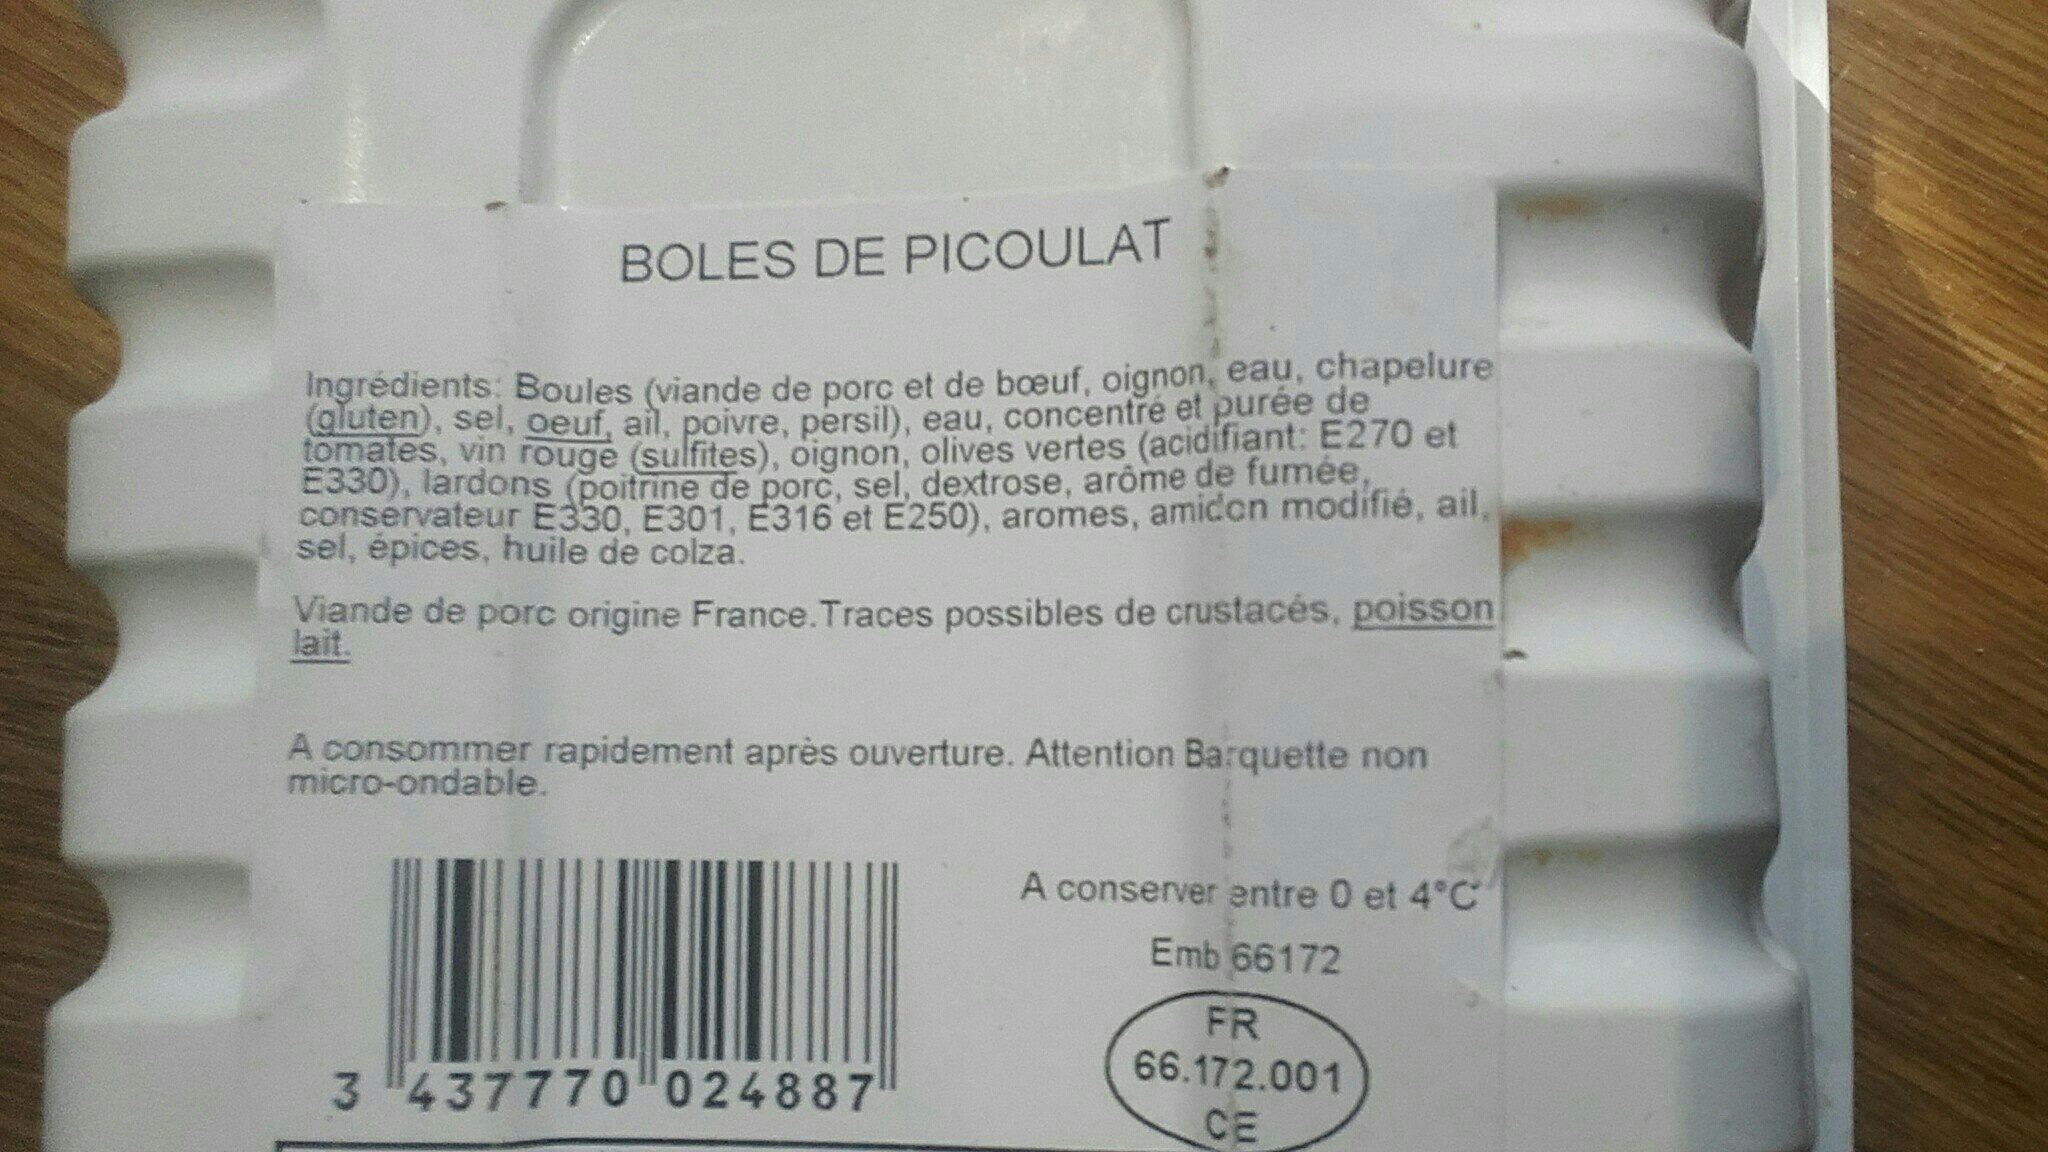 Boles de picoulat - Ingredients - fr